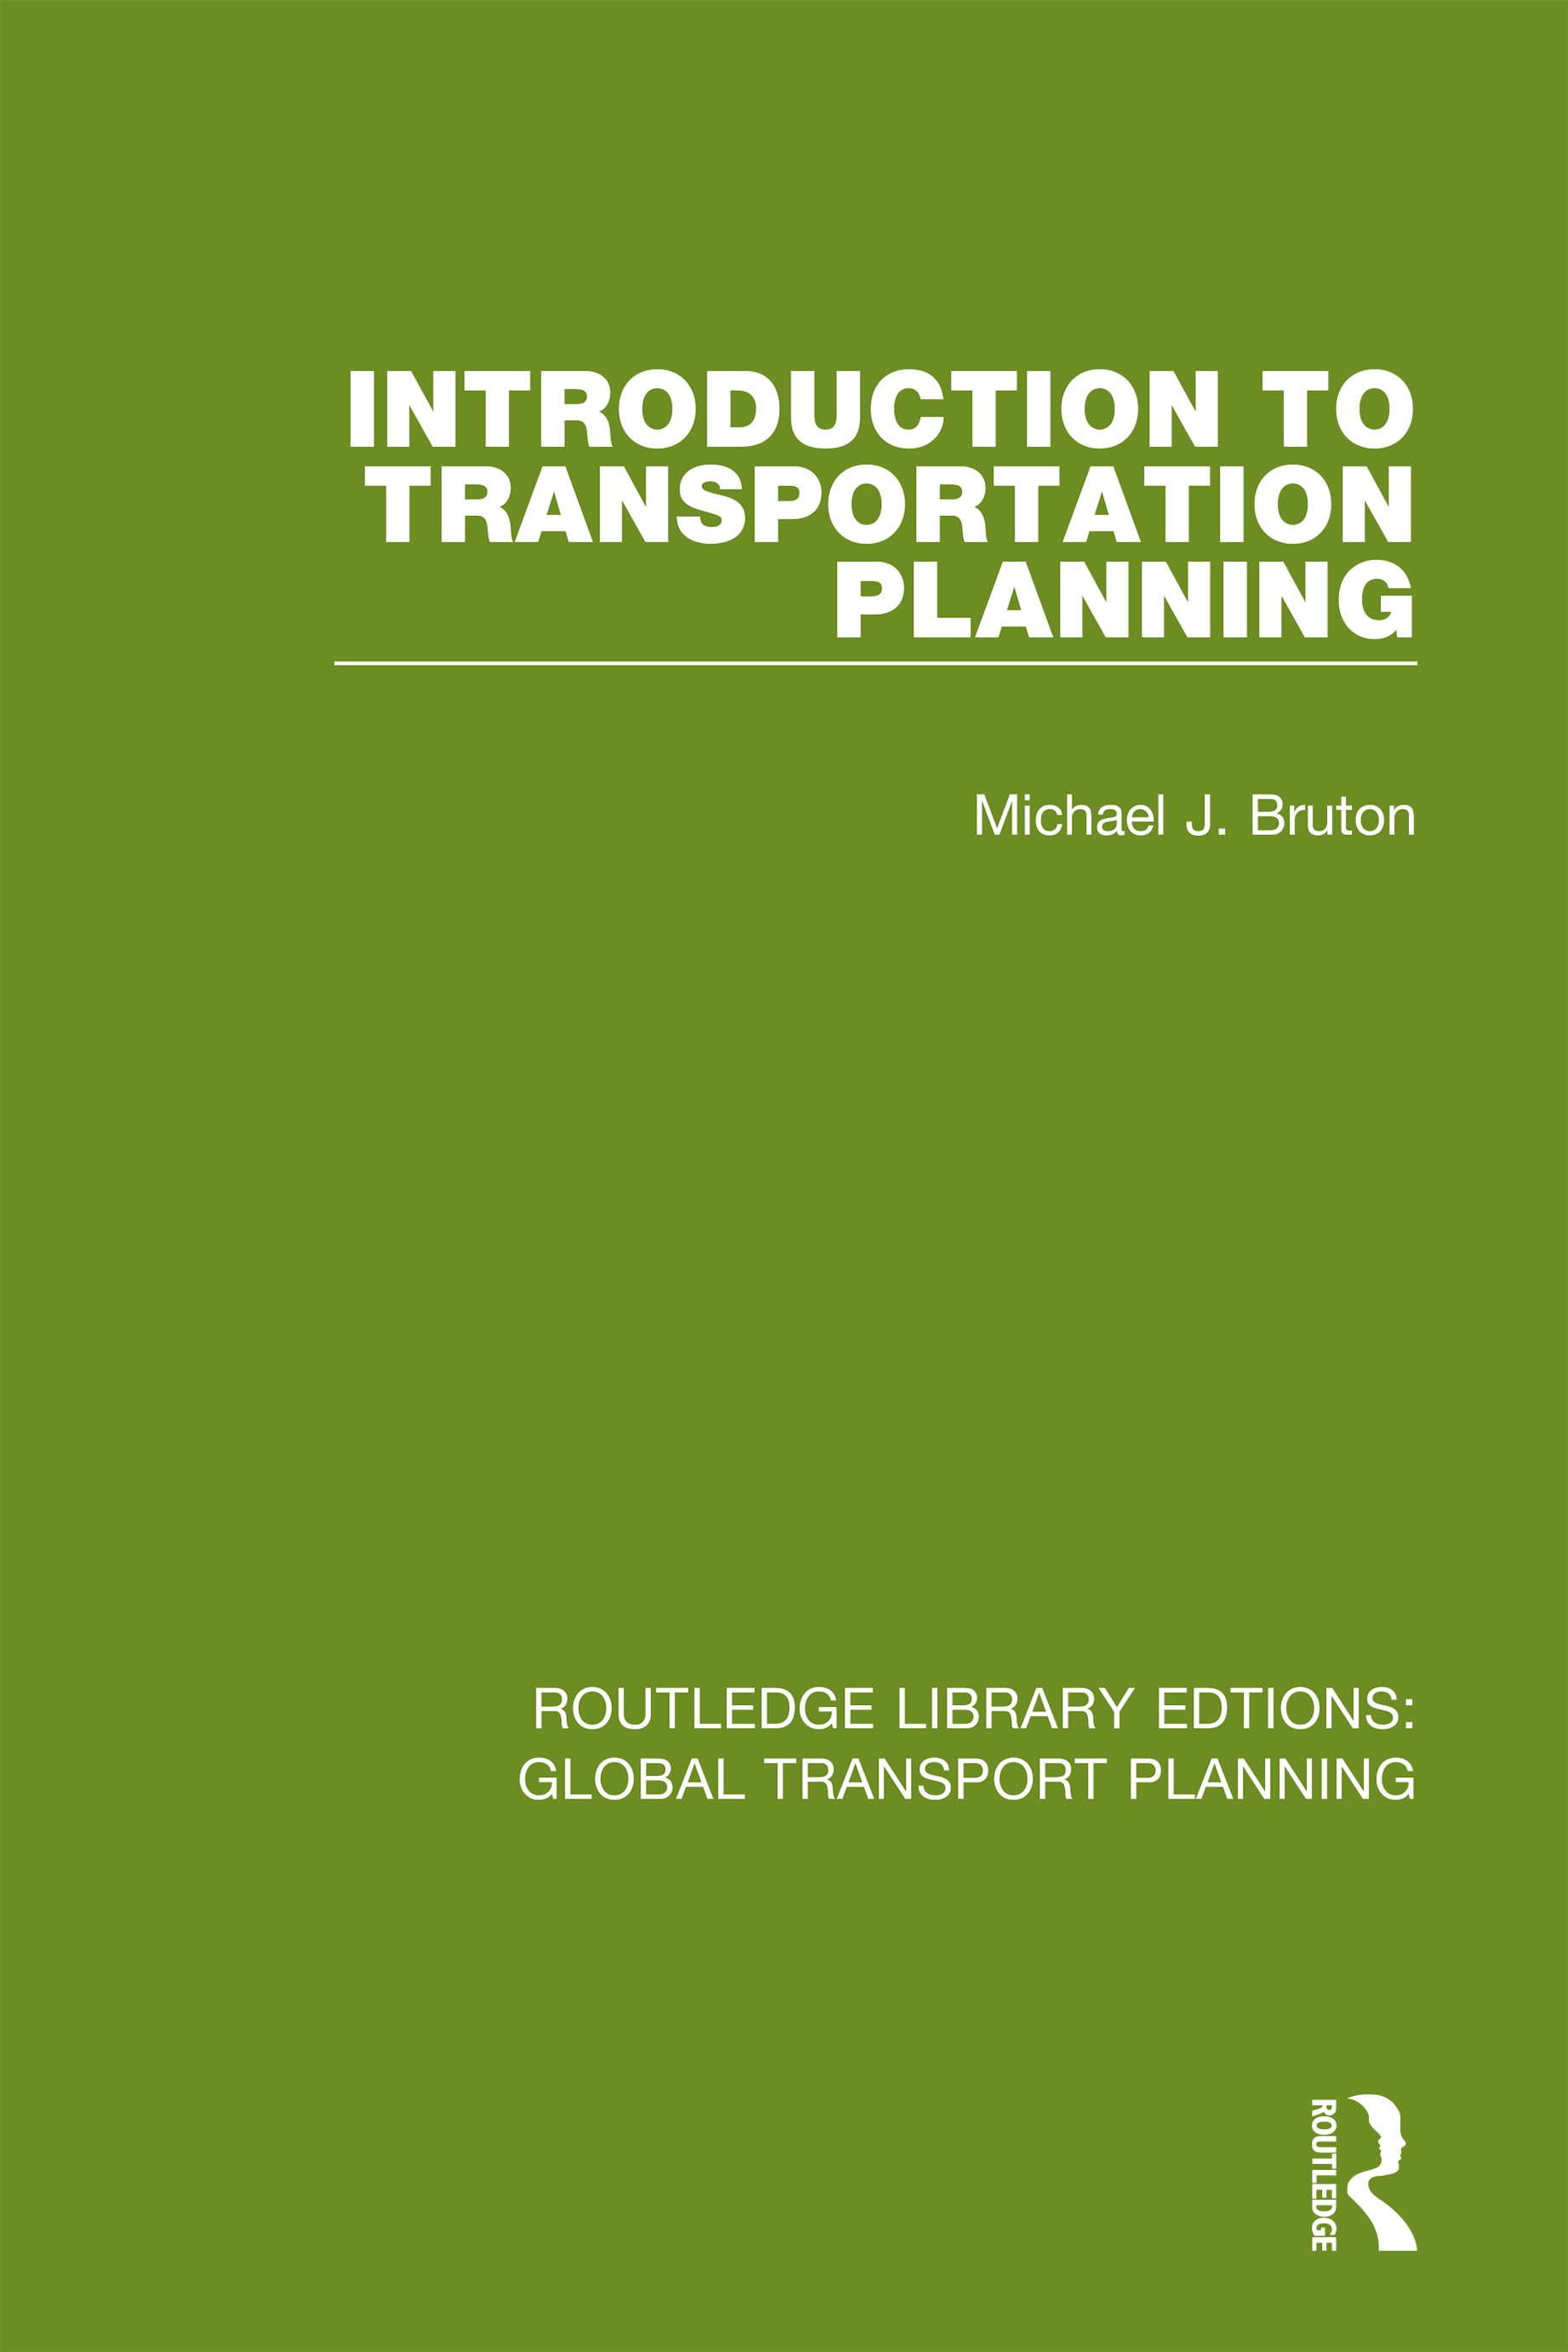 Introduction to Transportation Planning